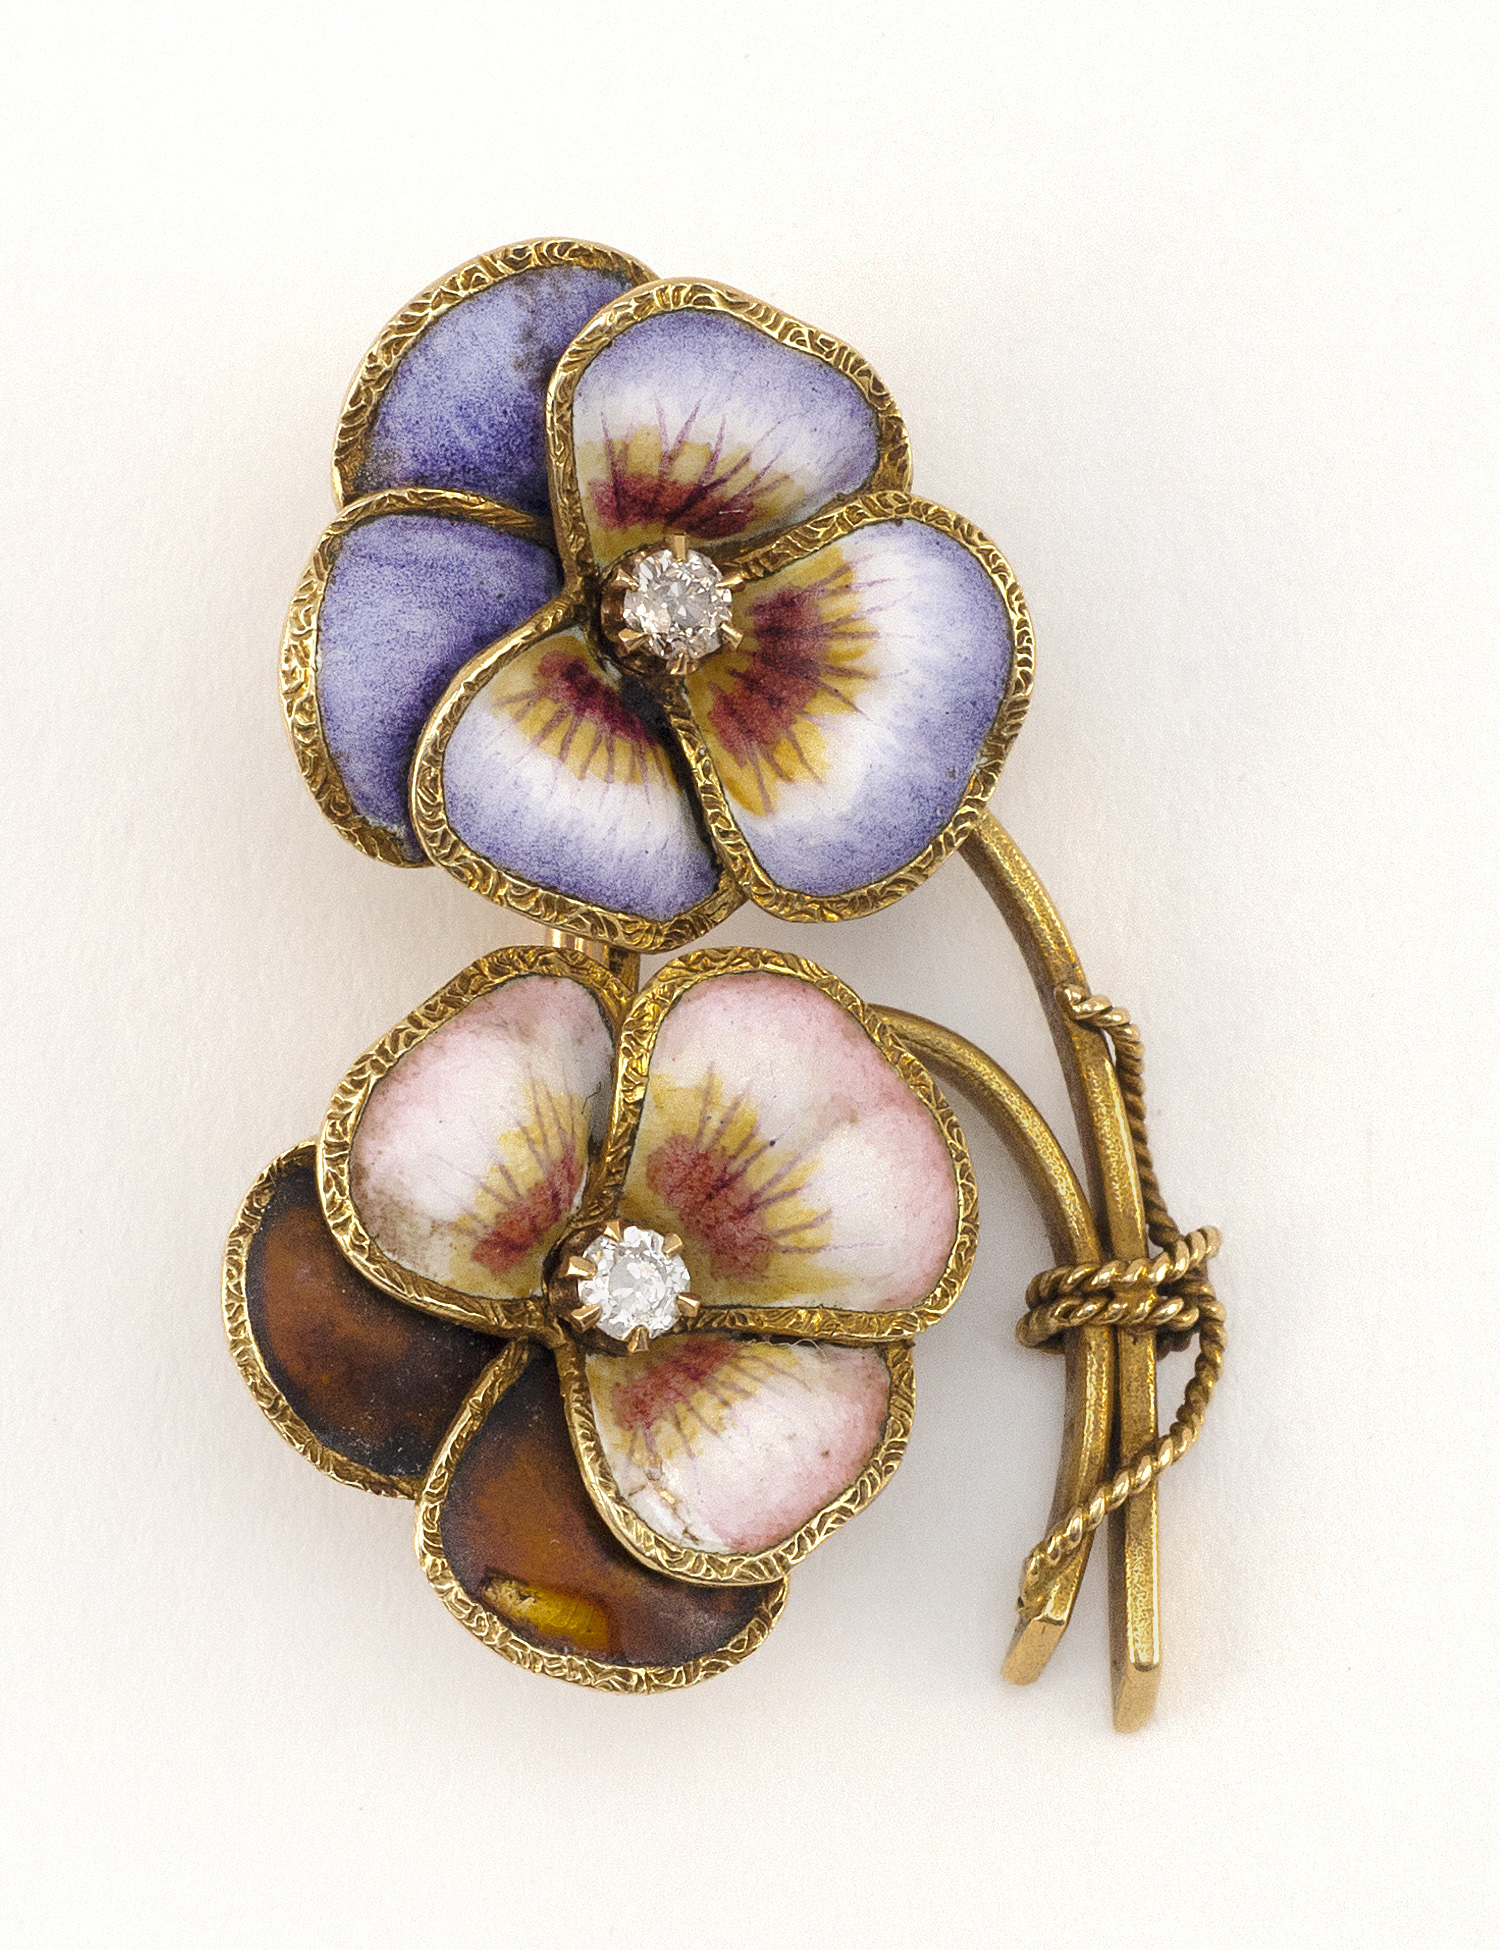 ANTIQUE GOLD, DIAMOND AND ENAMEL PIN FORMED AS TWO PANSIES Early 20th Century Approx. 6.52 dwt.